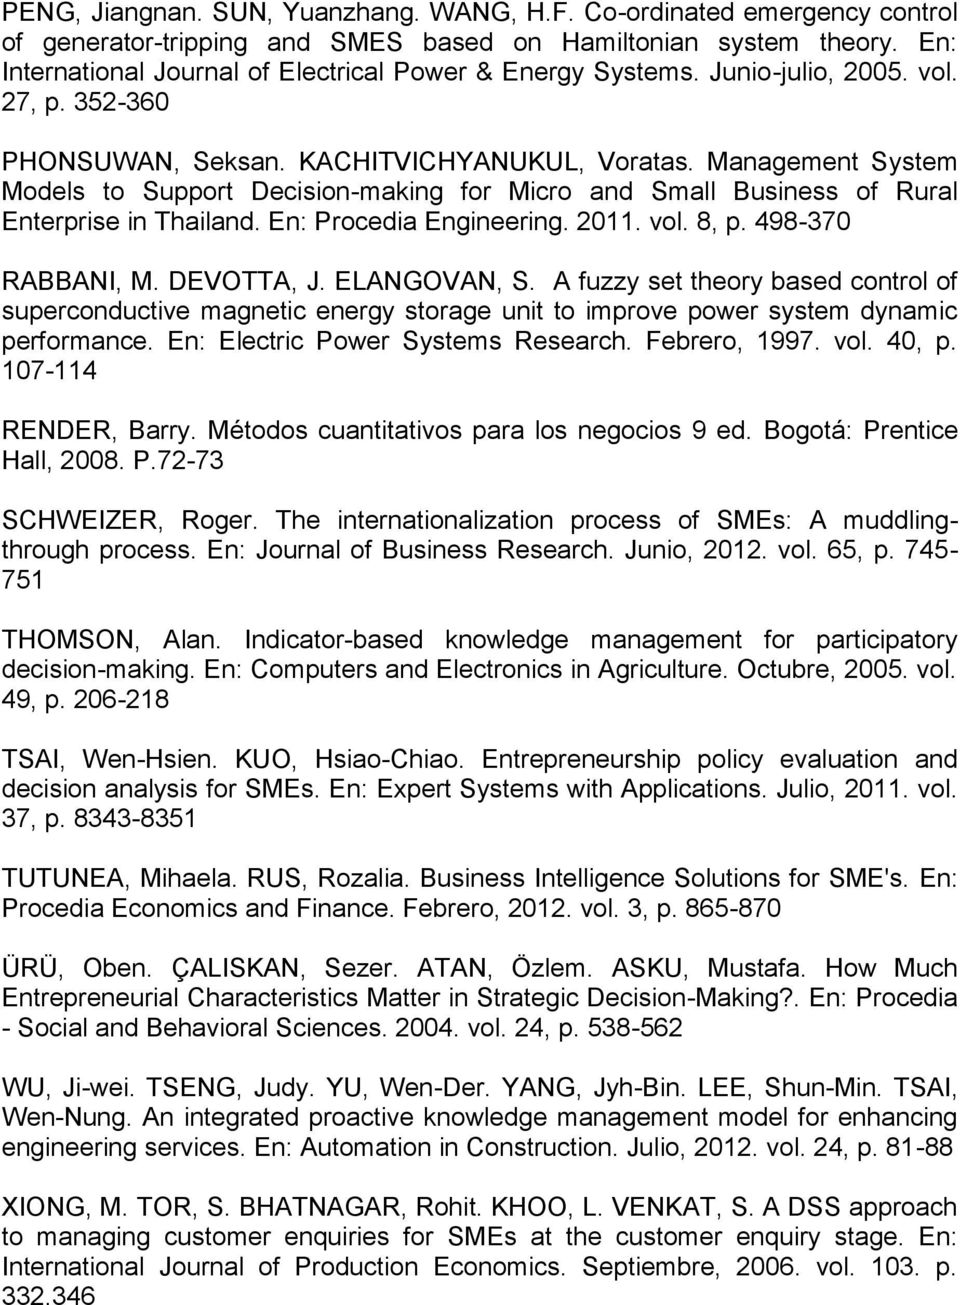 Management System Models to Support Decision-making for Micro and Small Business of Rural Enterprise in Thailand. En: Procedia Engineering. 2011. vol. 8, p. 498-370 RABBANI, M. DEVOTTA, J.